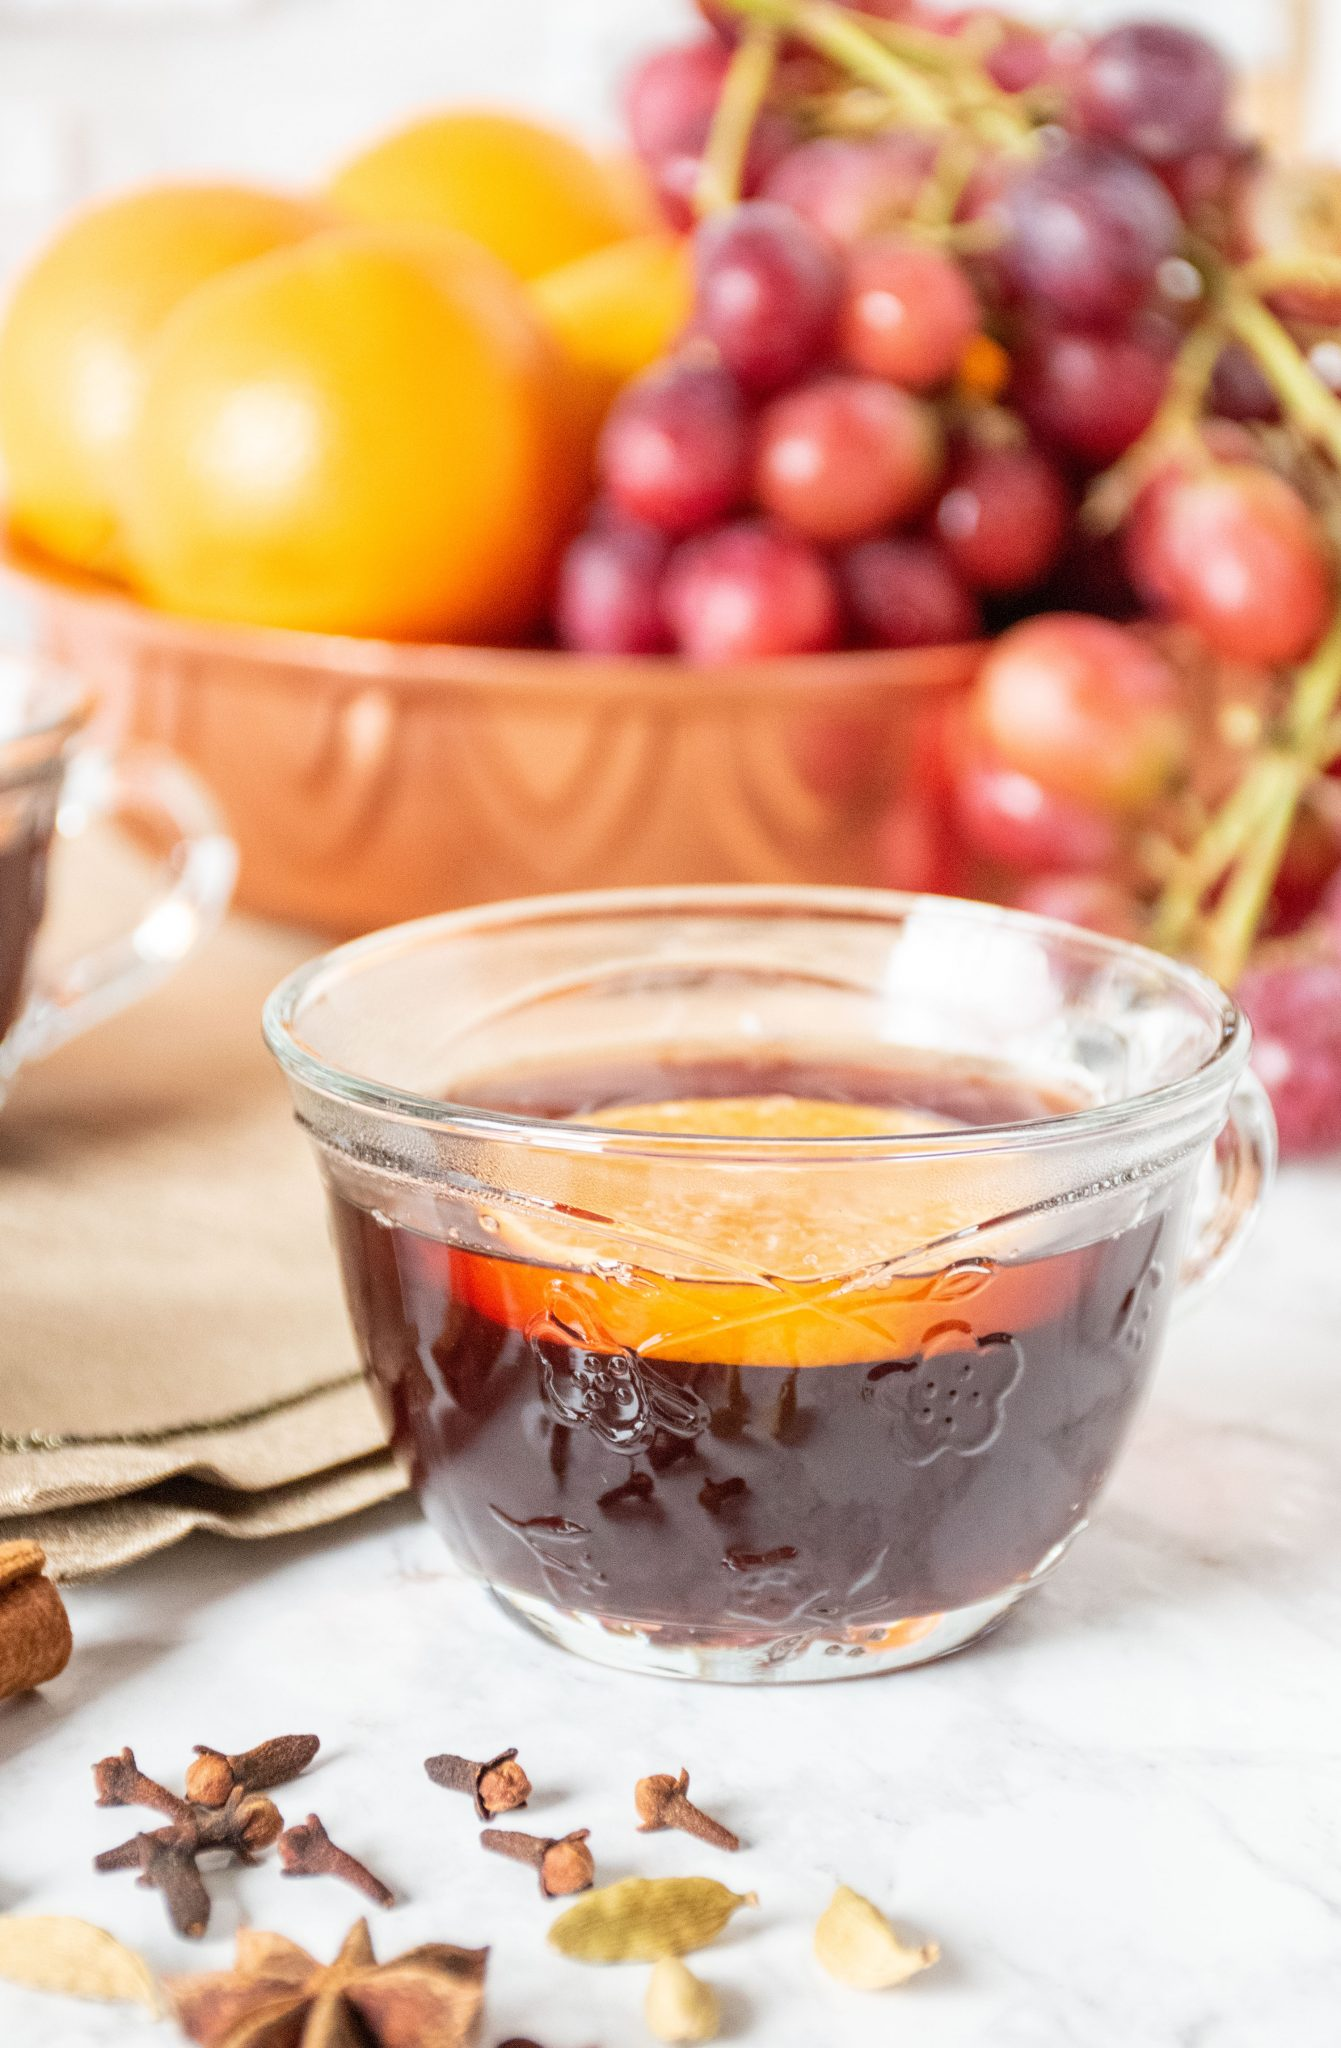 Close up of a small glass mug, filled with mulled grape juice, with an orange slice in it.